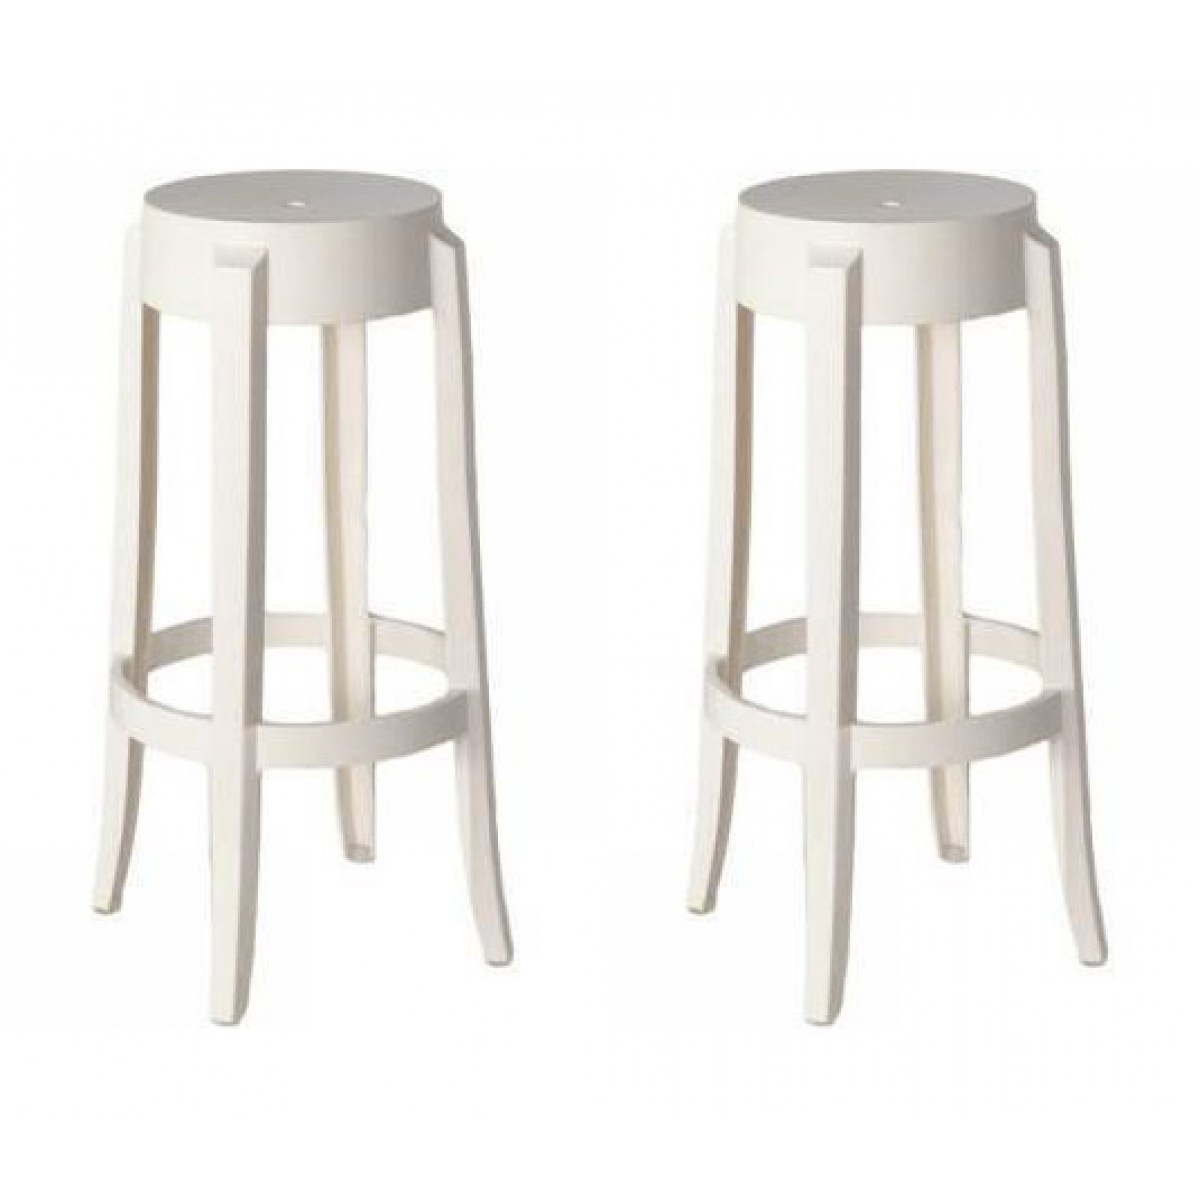 ghost chair bar stool x rocker gaming cables for xbox one set of 2 victoria style white color